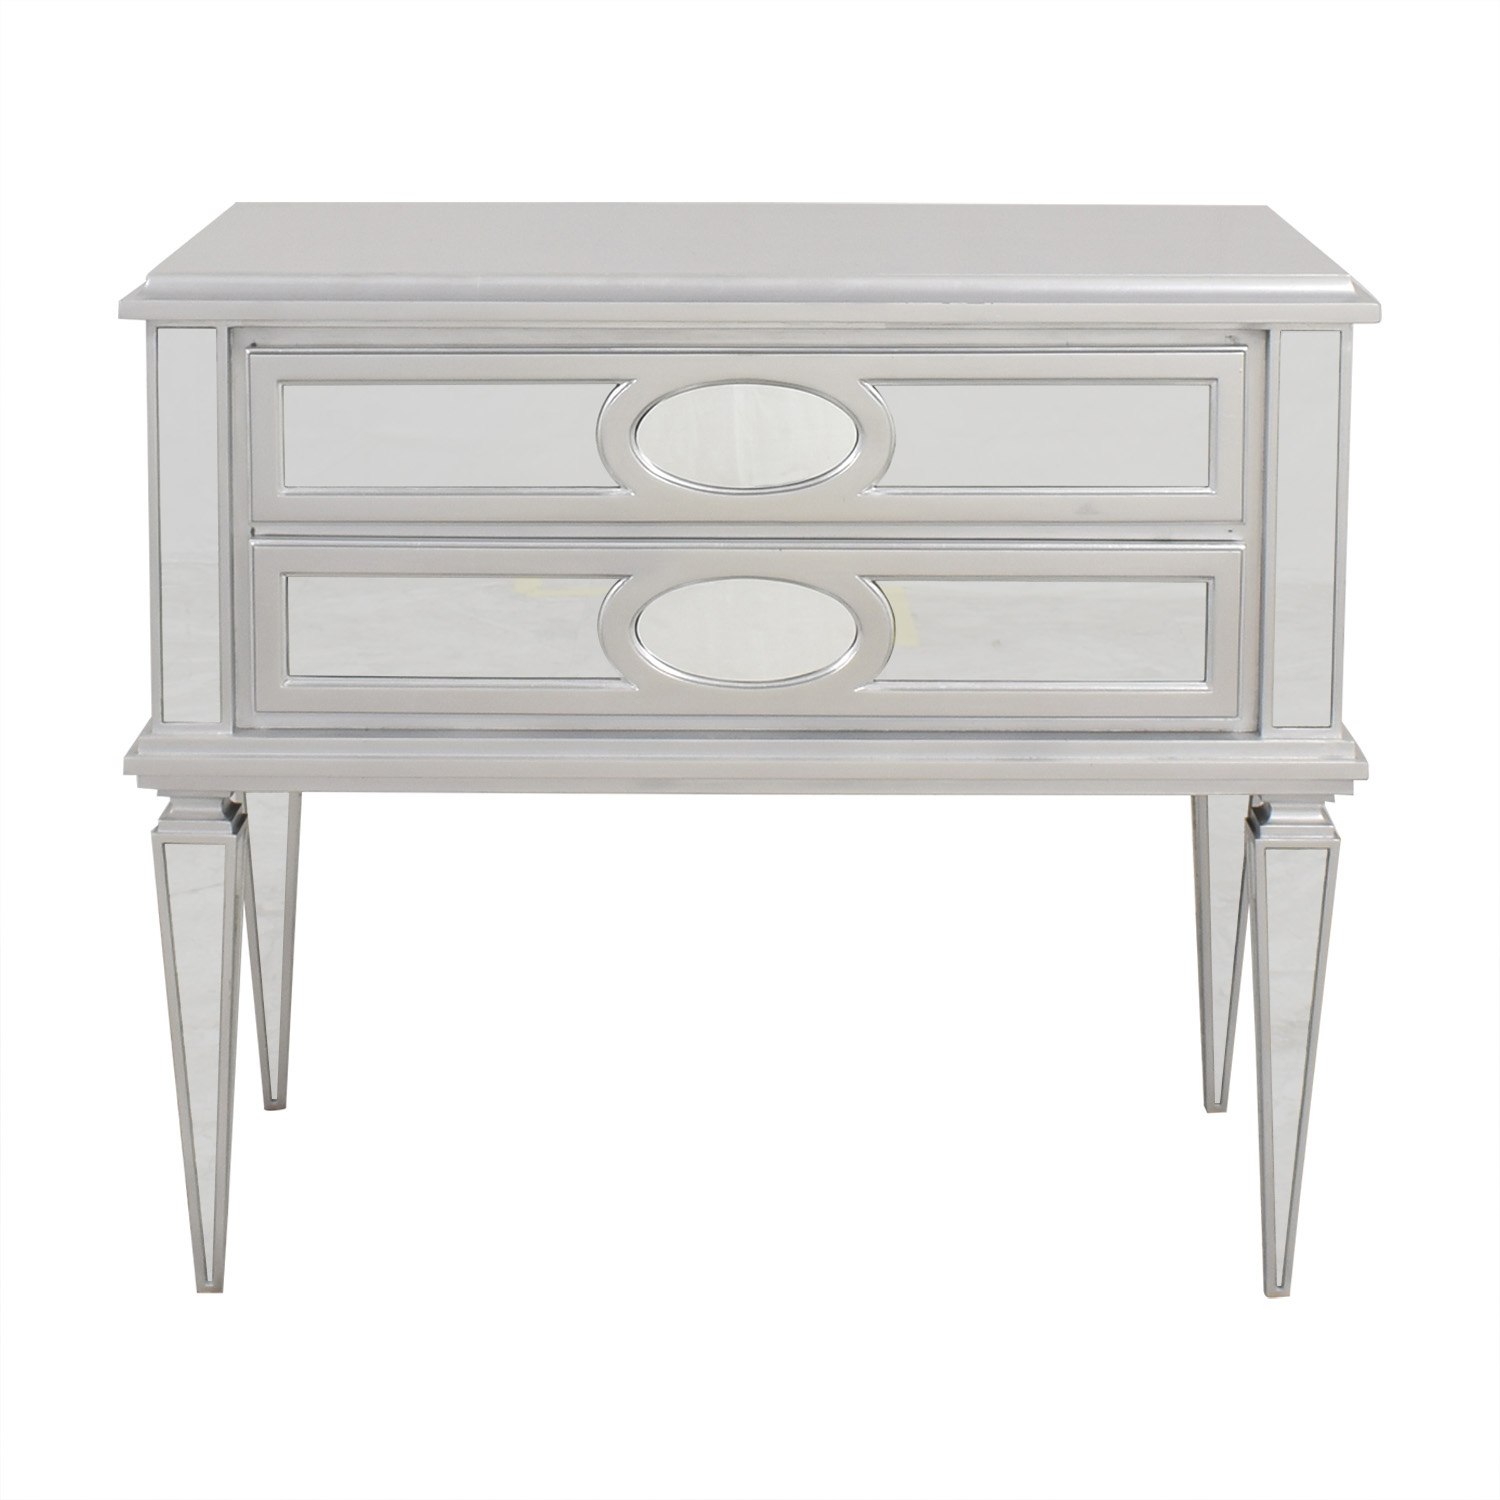 Christopher Guy Christopher Guy Montmartre Chest of Drawers